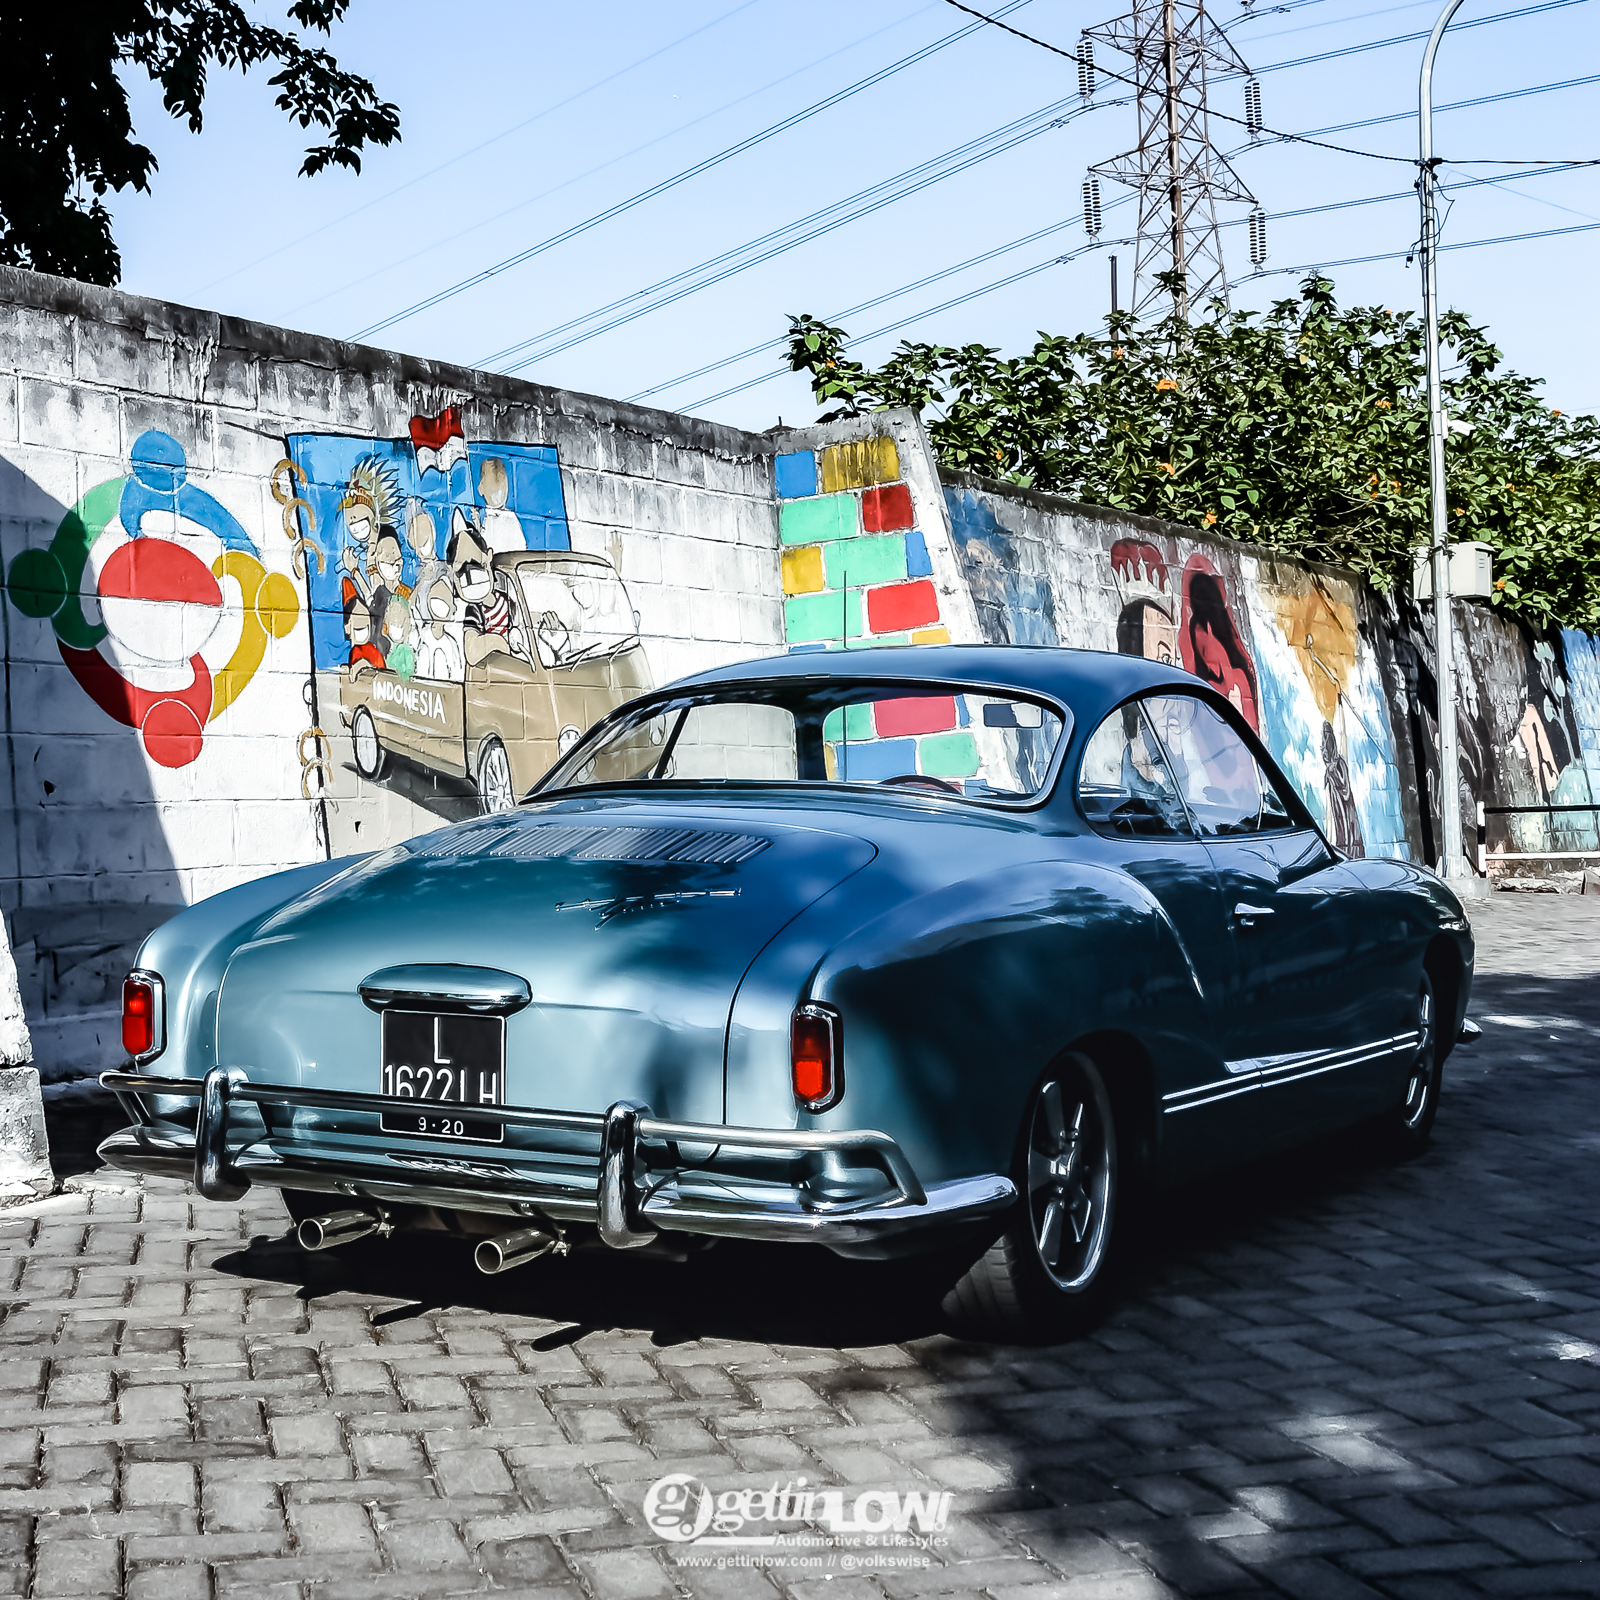 KarmannGhia_lowlight_1959-9